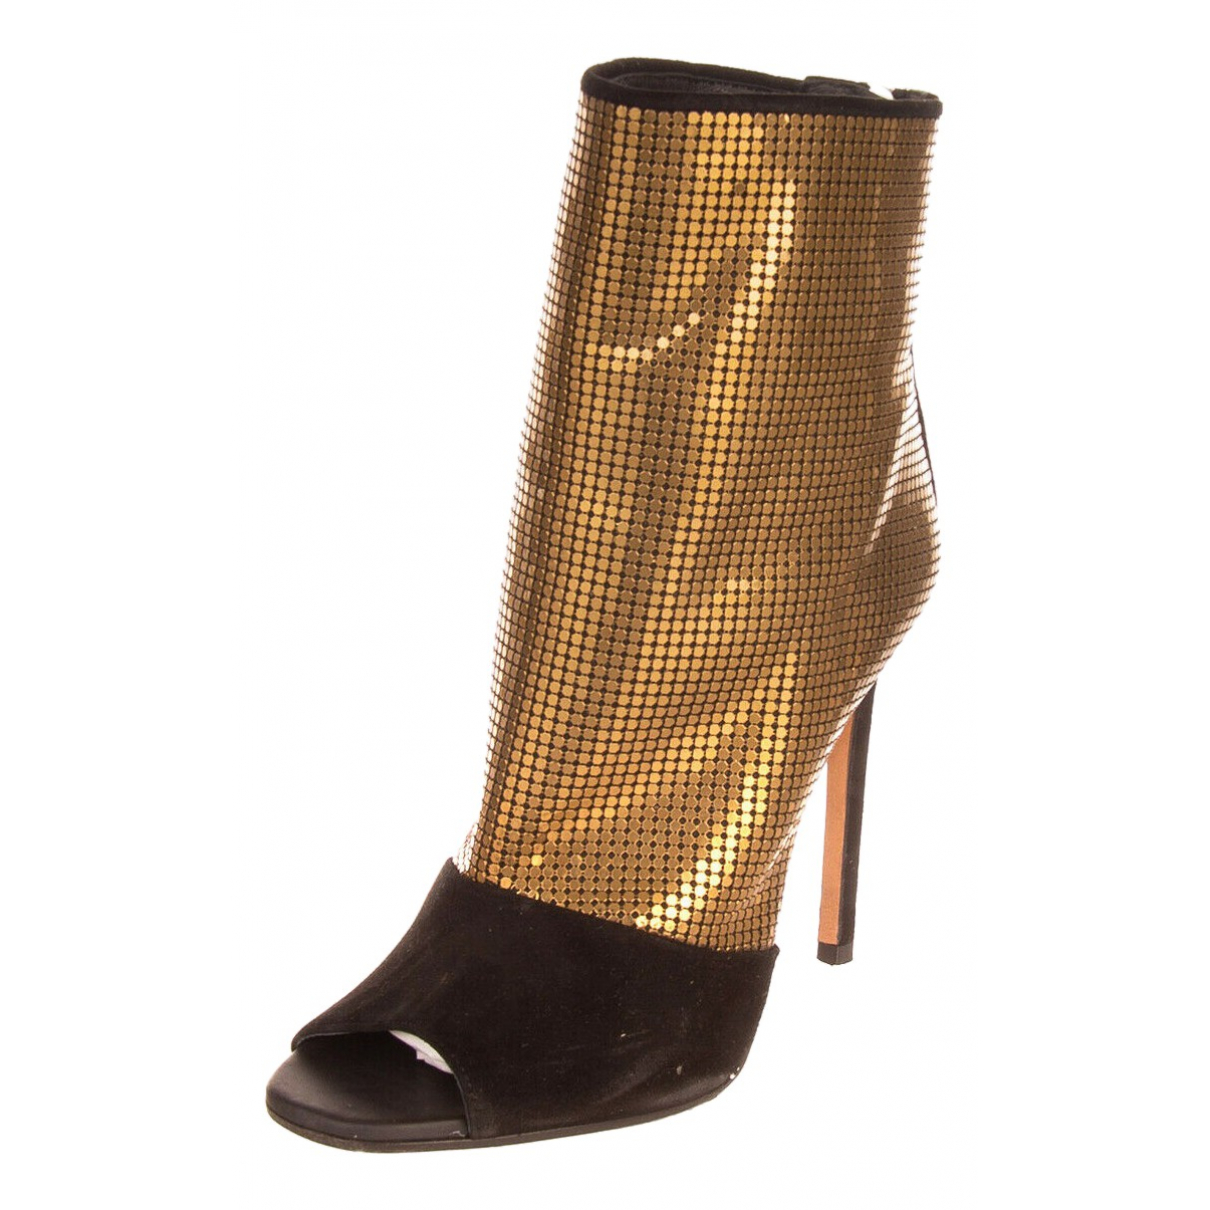 Pierre Balmain N Gold Leather Ankle boots for Women 38 EU